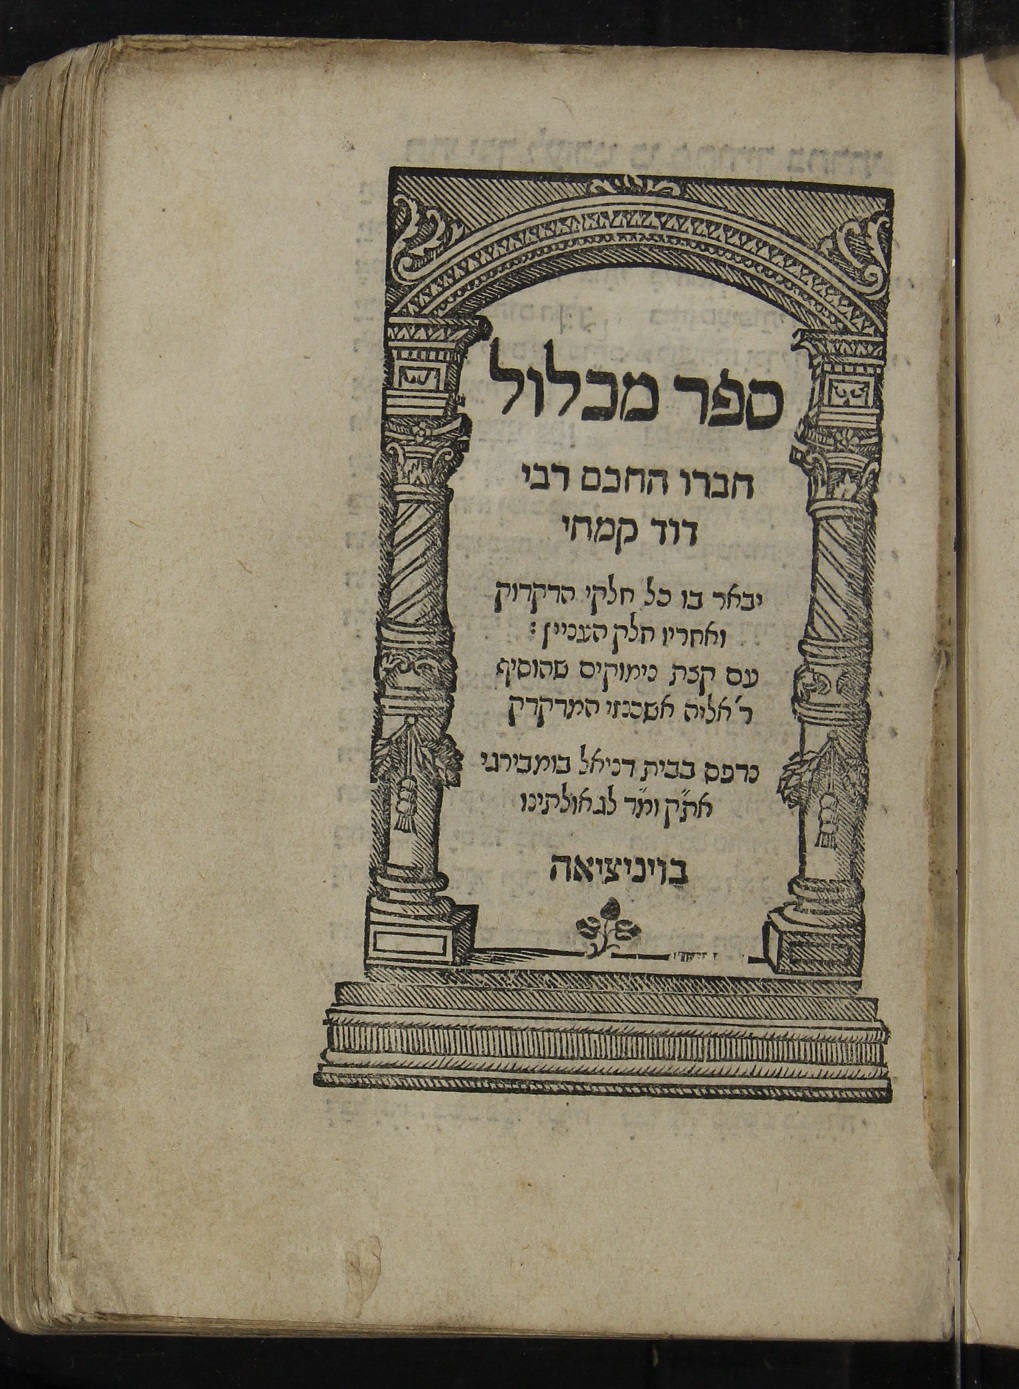 Sefer Michlol 1545 - 0019.jpg